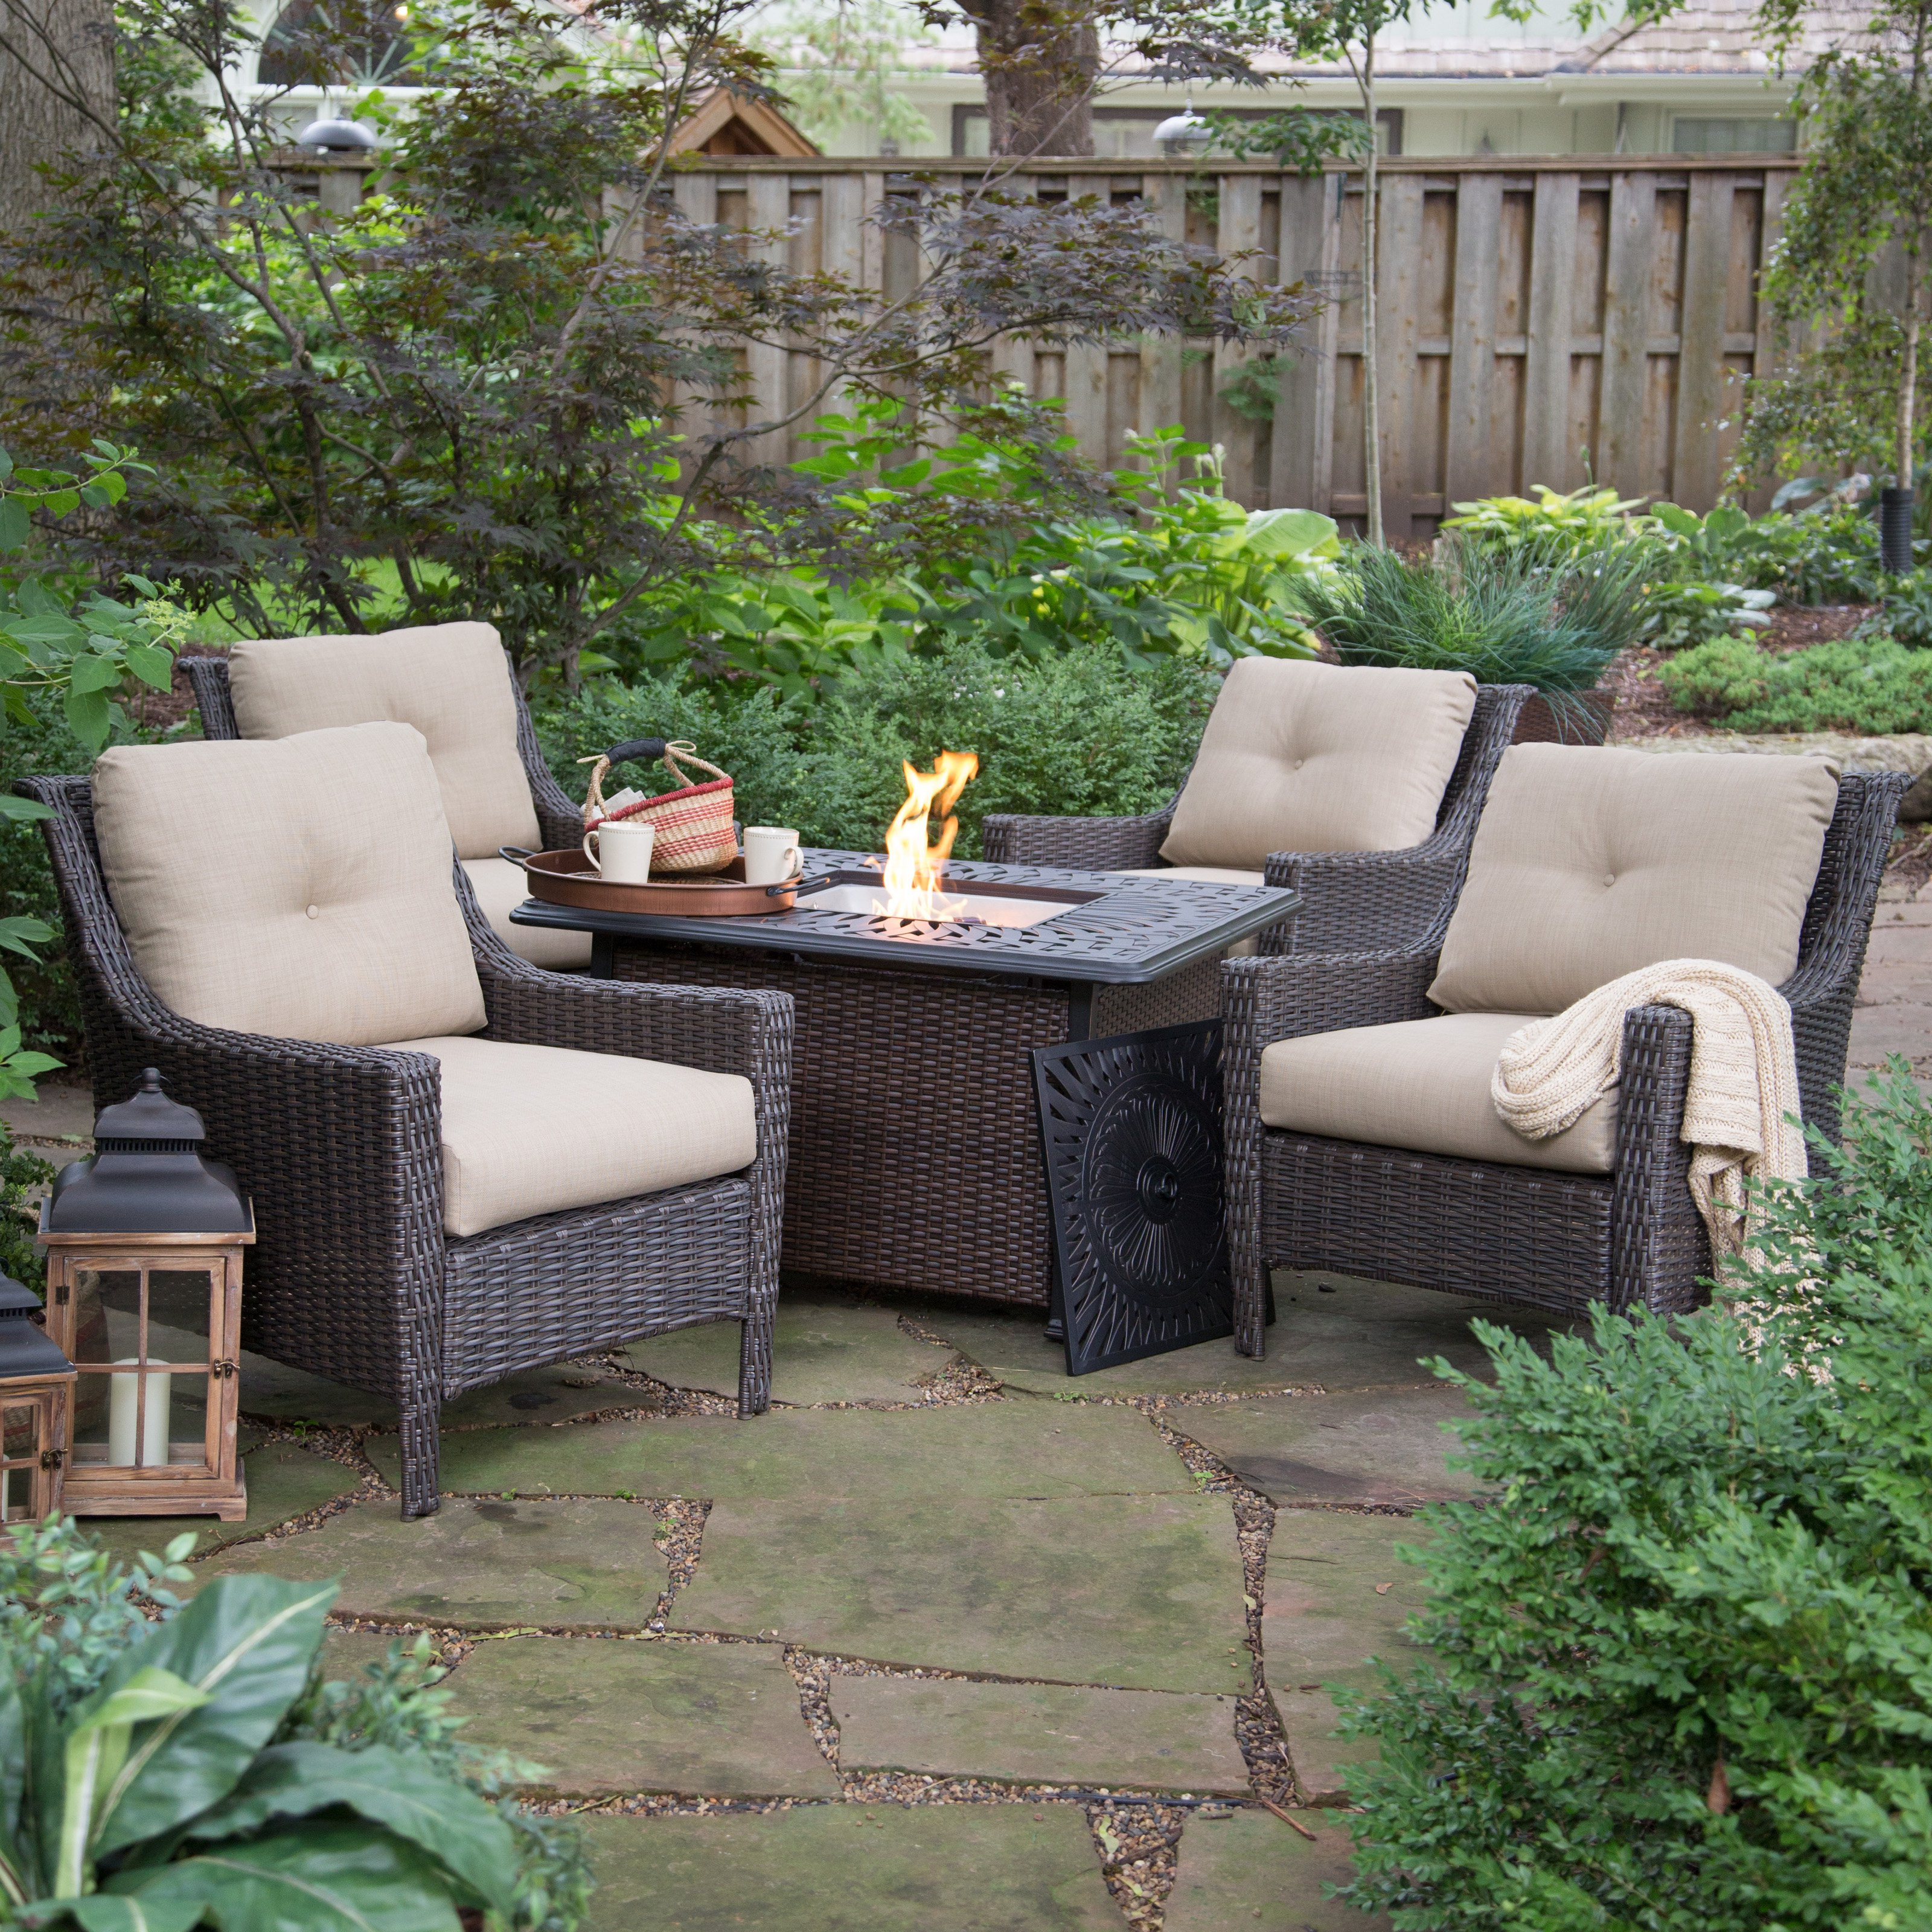 Best ideas about Outdoor Fire Pit Sets . Save or Pin Belham Living Springfield Wicker Chat Set with Florentine Now.